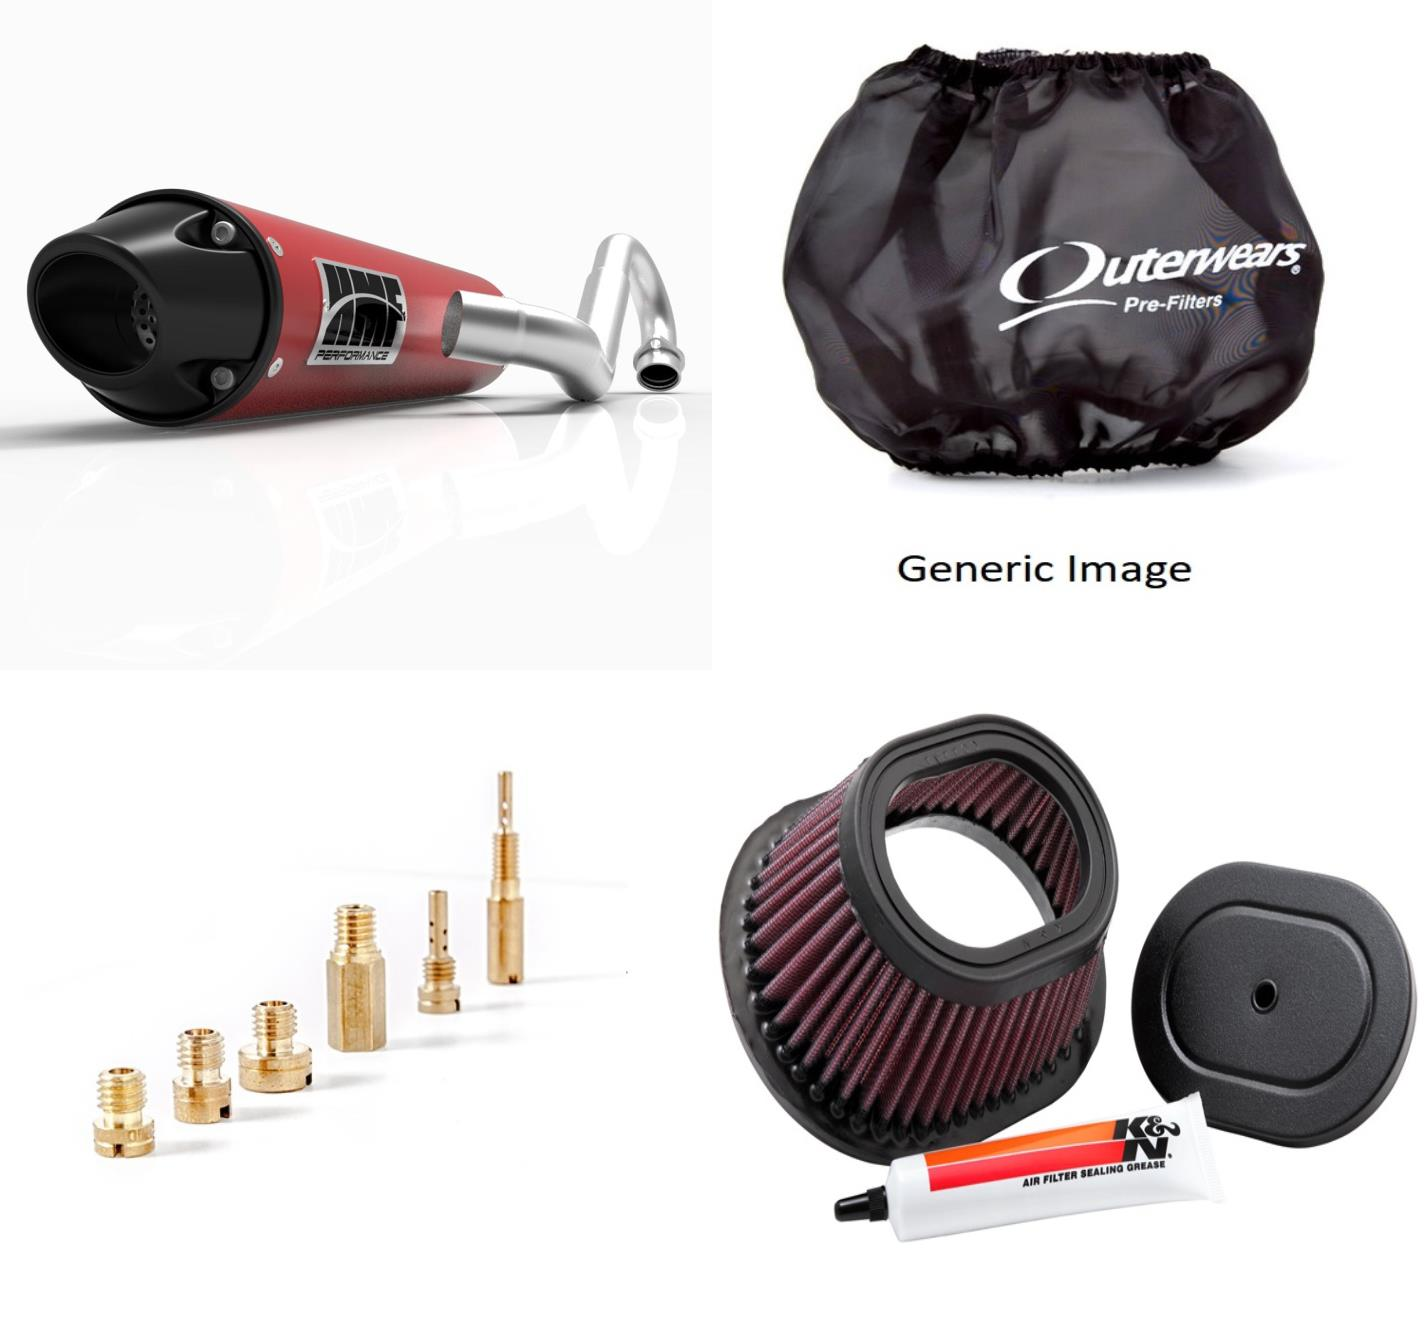 Basic Jet Kit, Air Filter, Pre Filter & Candy-Red Performance-Series Full System Exhaust Euro-Black for Yamaha Raptor 125 2011-2014